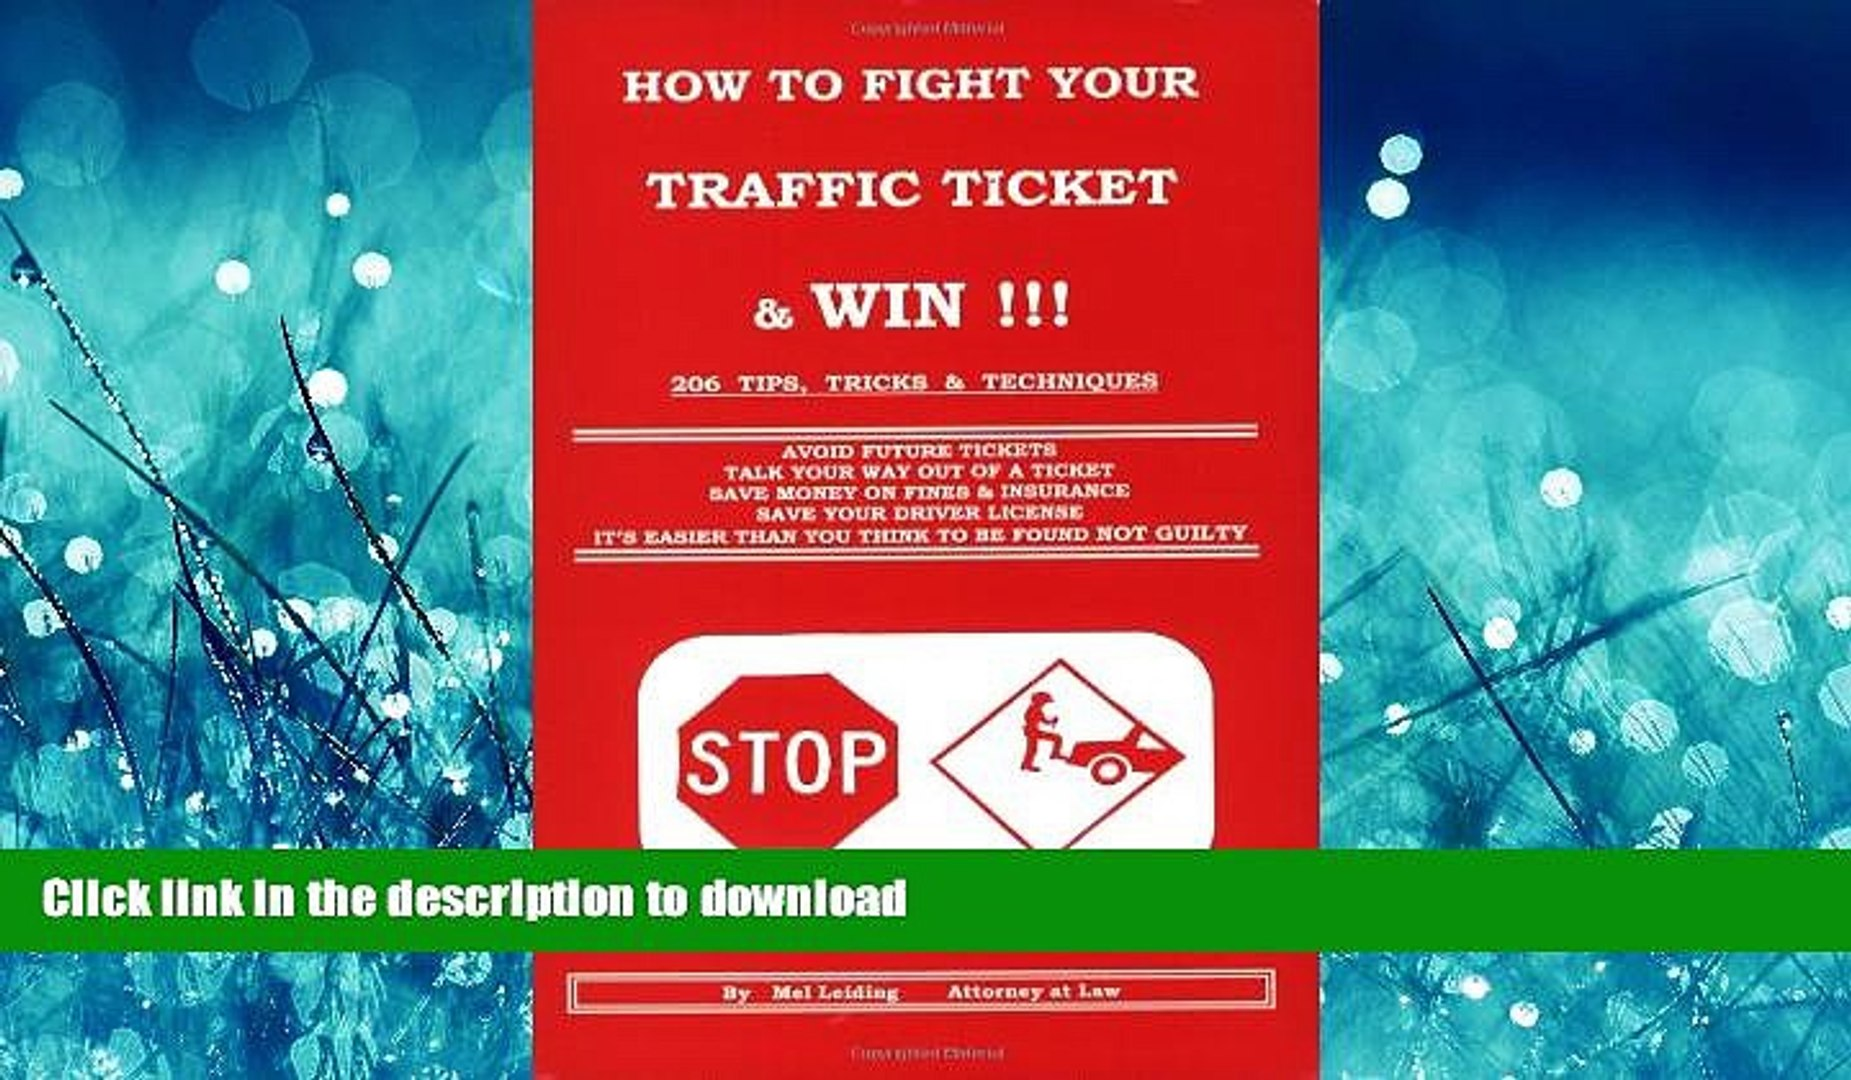 FAVORIT BOOK How to Fight Your Traffic Ticket and Win!: 206 Tips Tricks and Techniques READ EBOOK